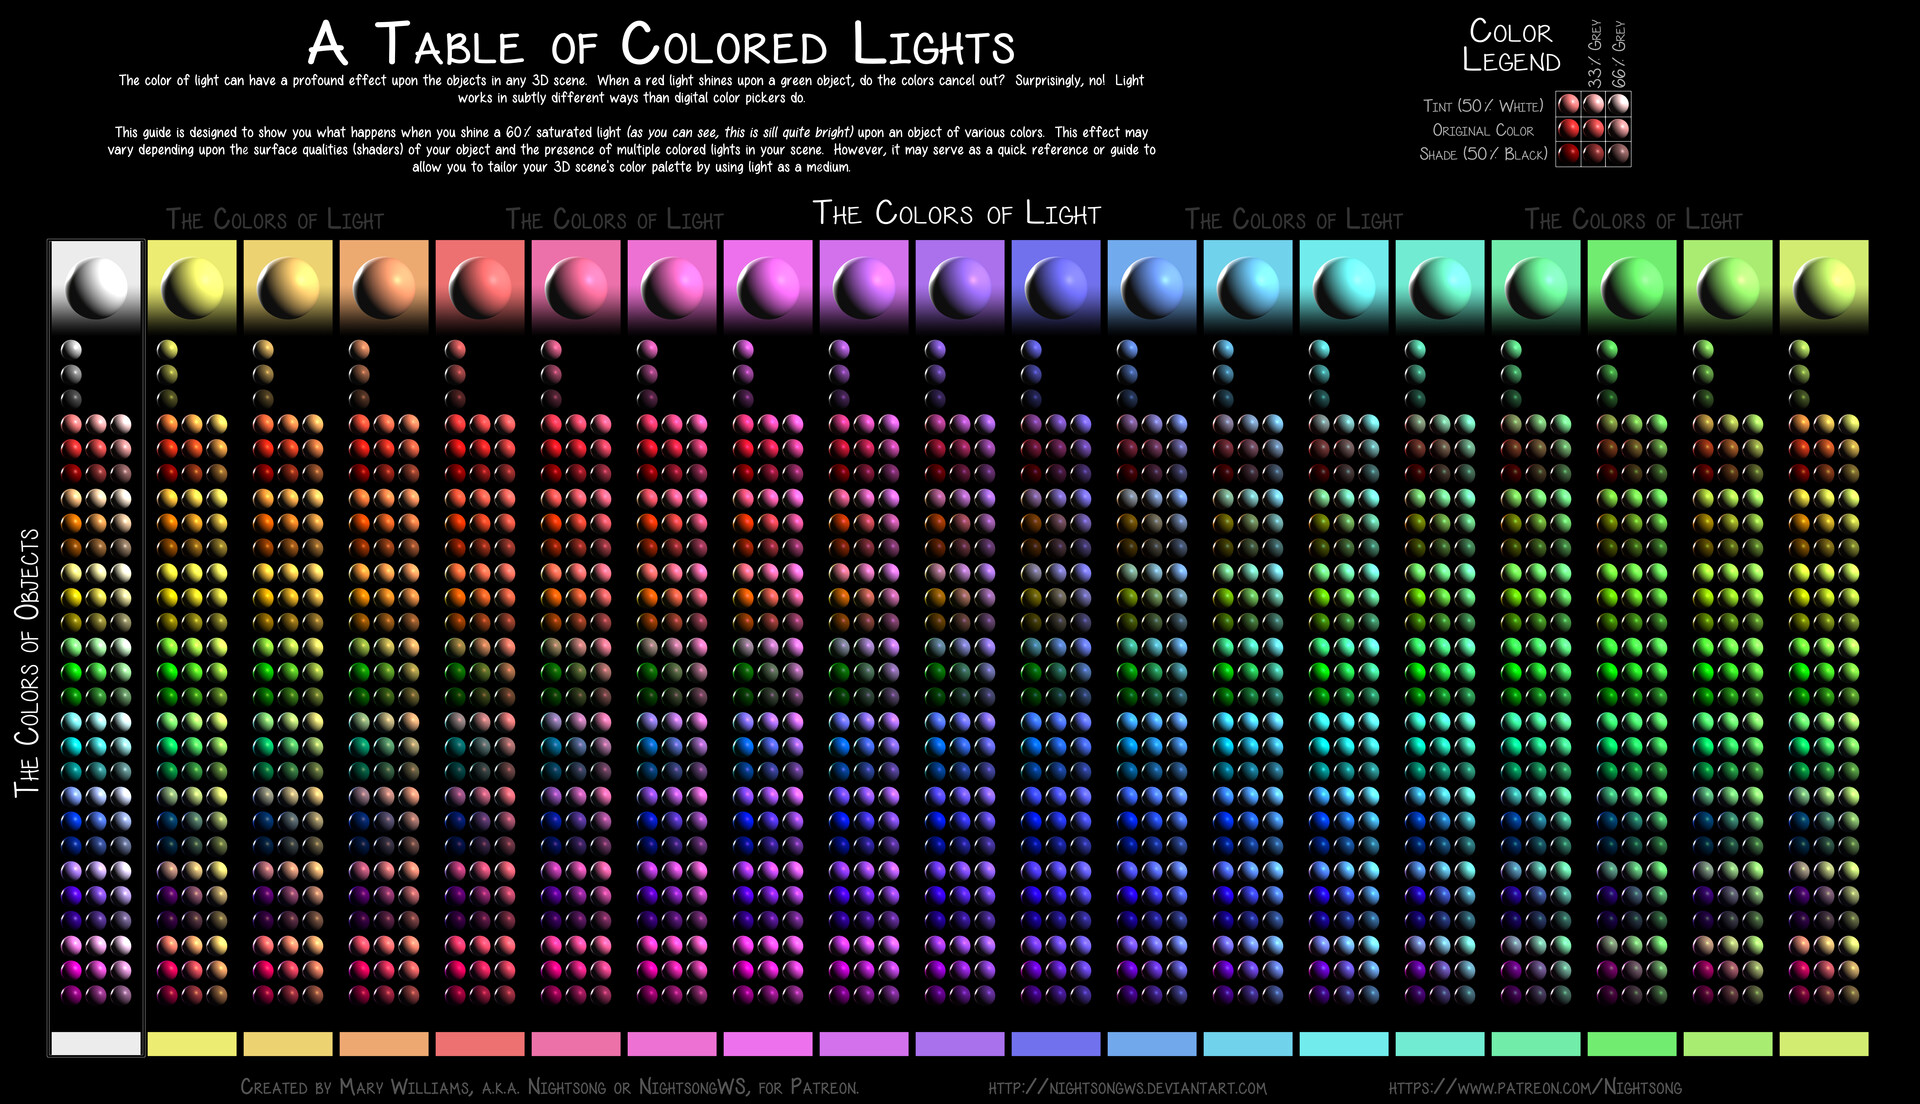 A table showing the effect of colored light on objects of differnet colors.